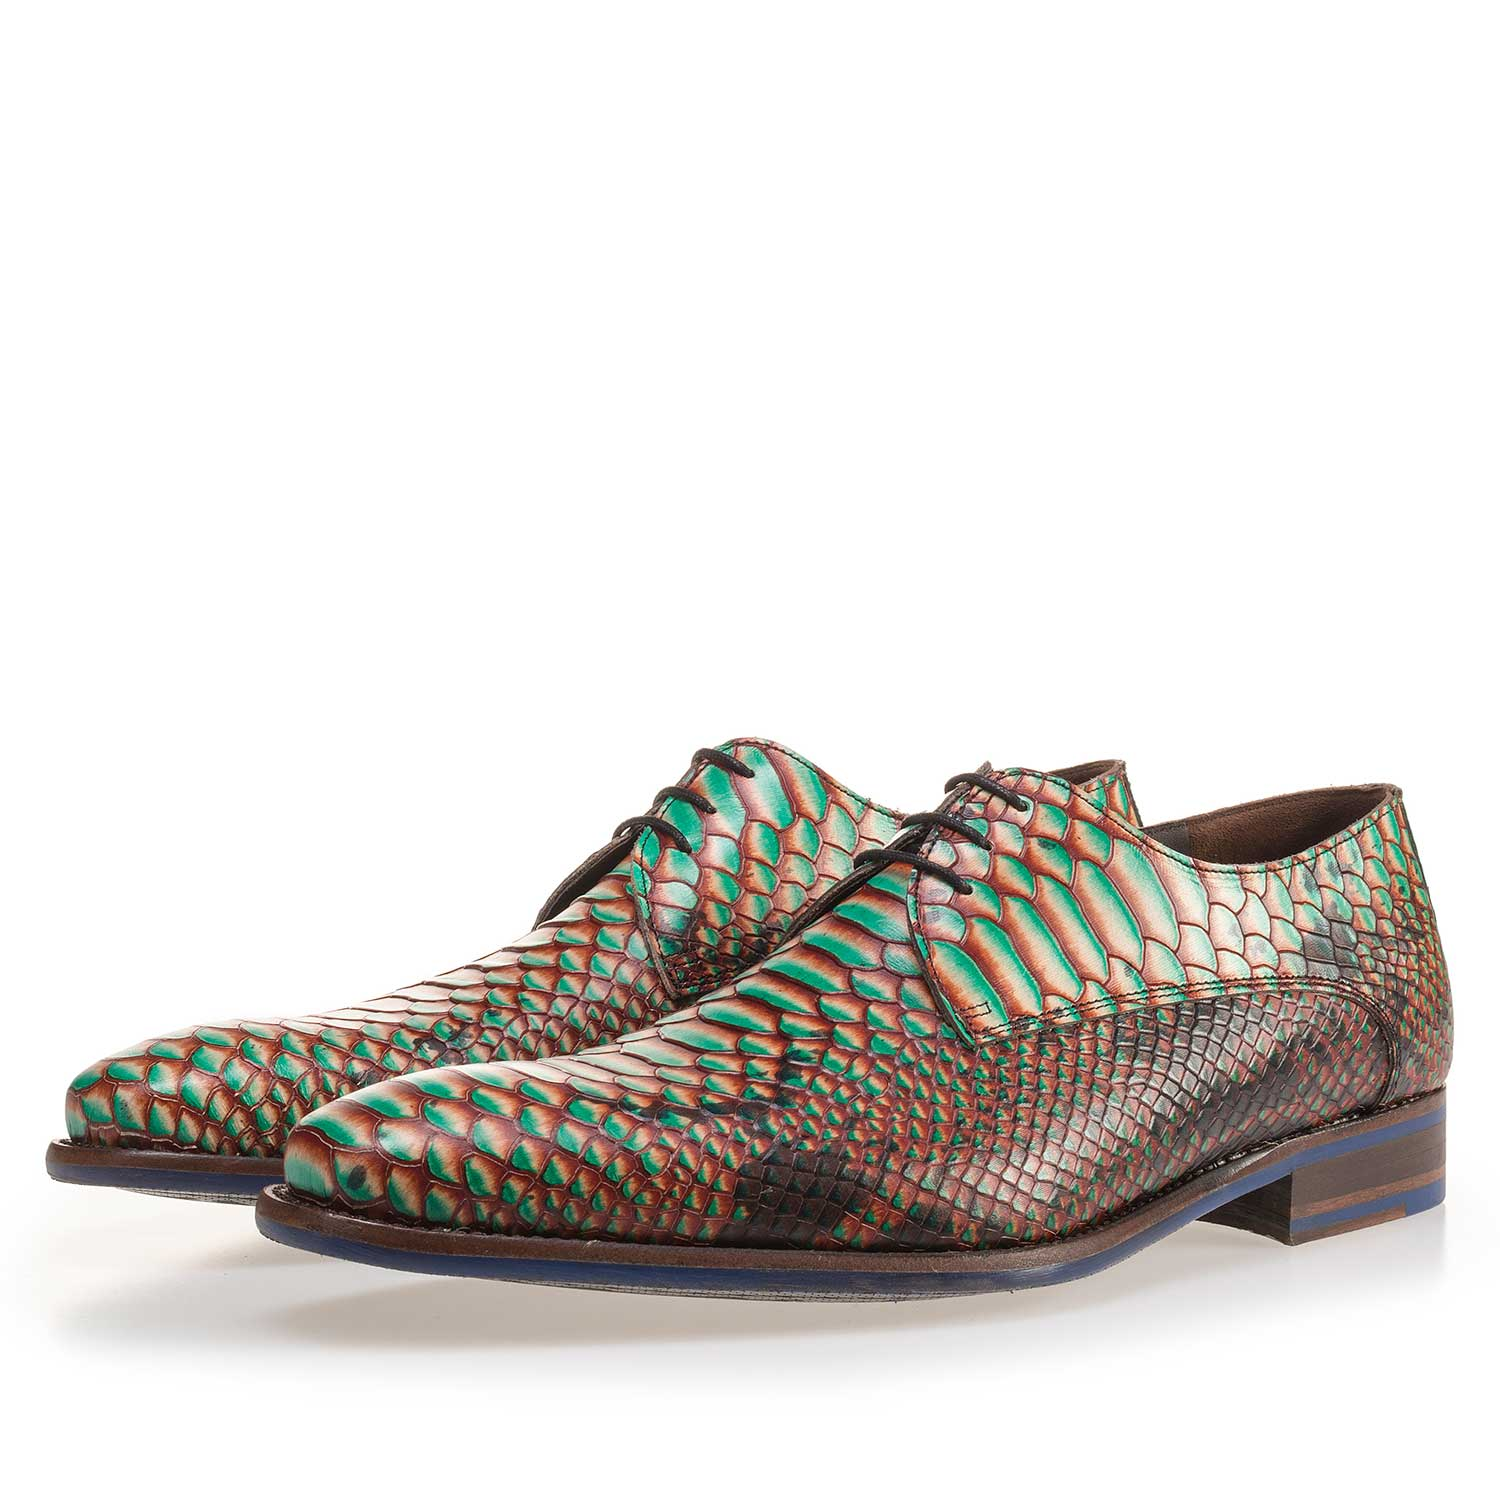 14204/01 - Green leather lace shoe with a snake print